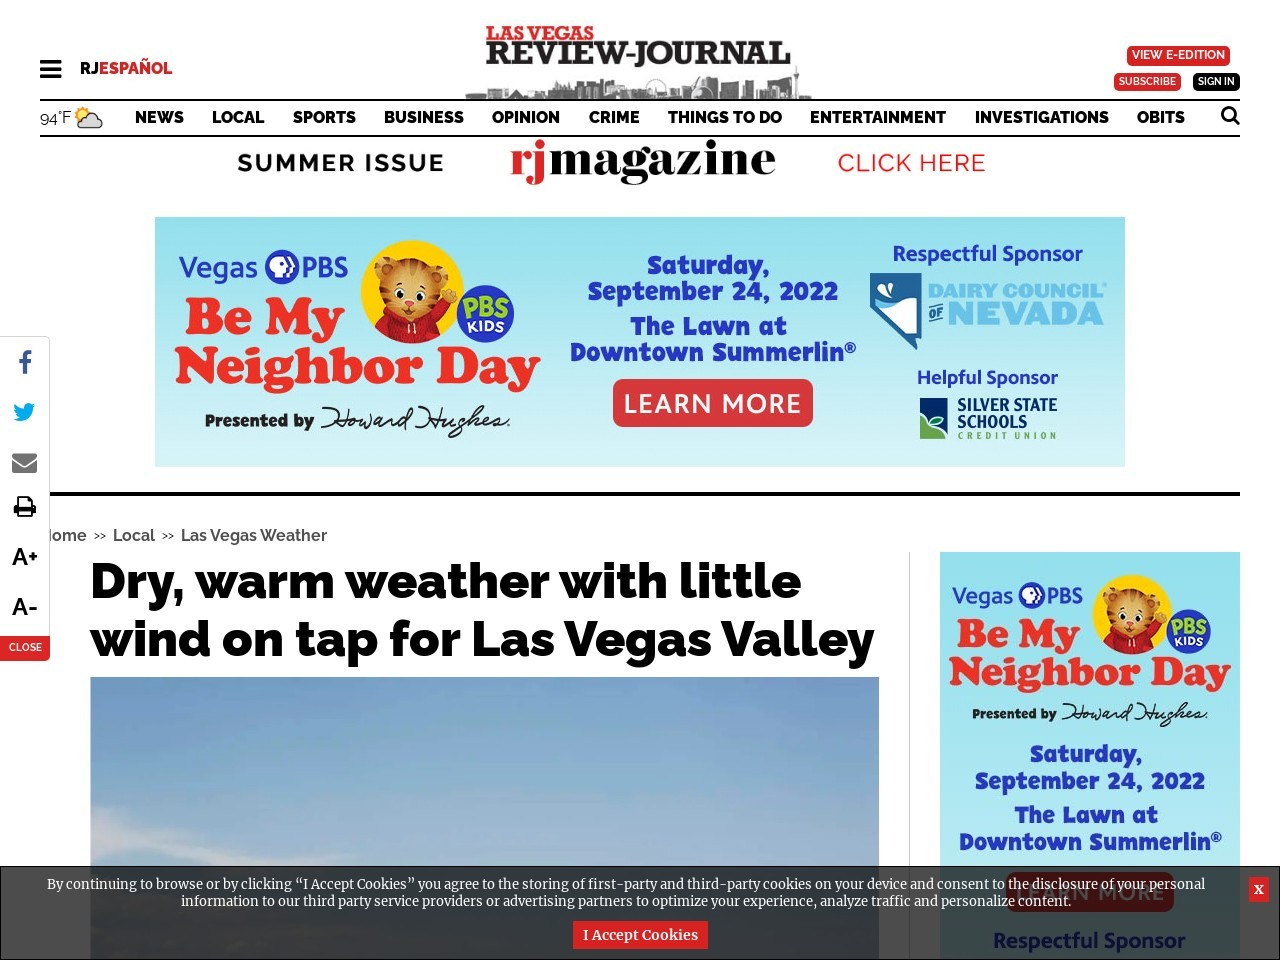 Dry, warm weather, with little wind on tap for Las Vegas Valley